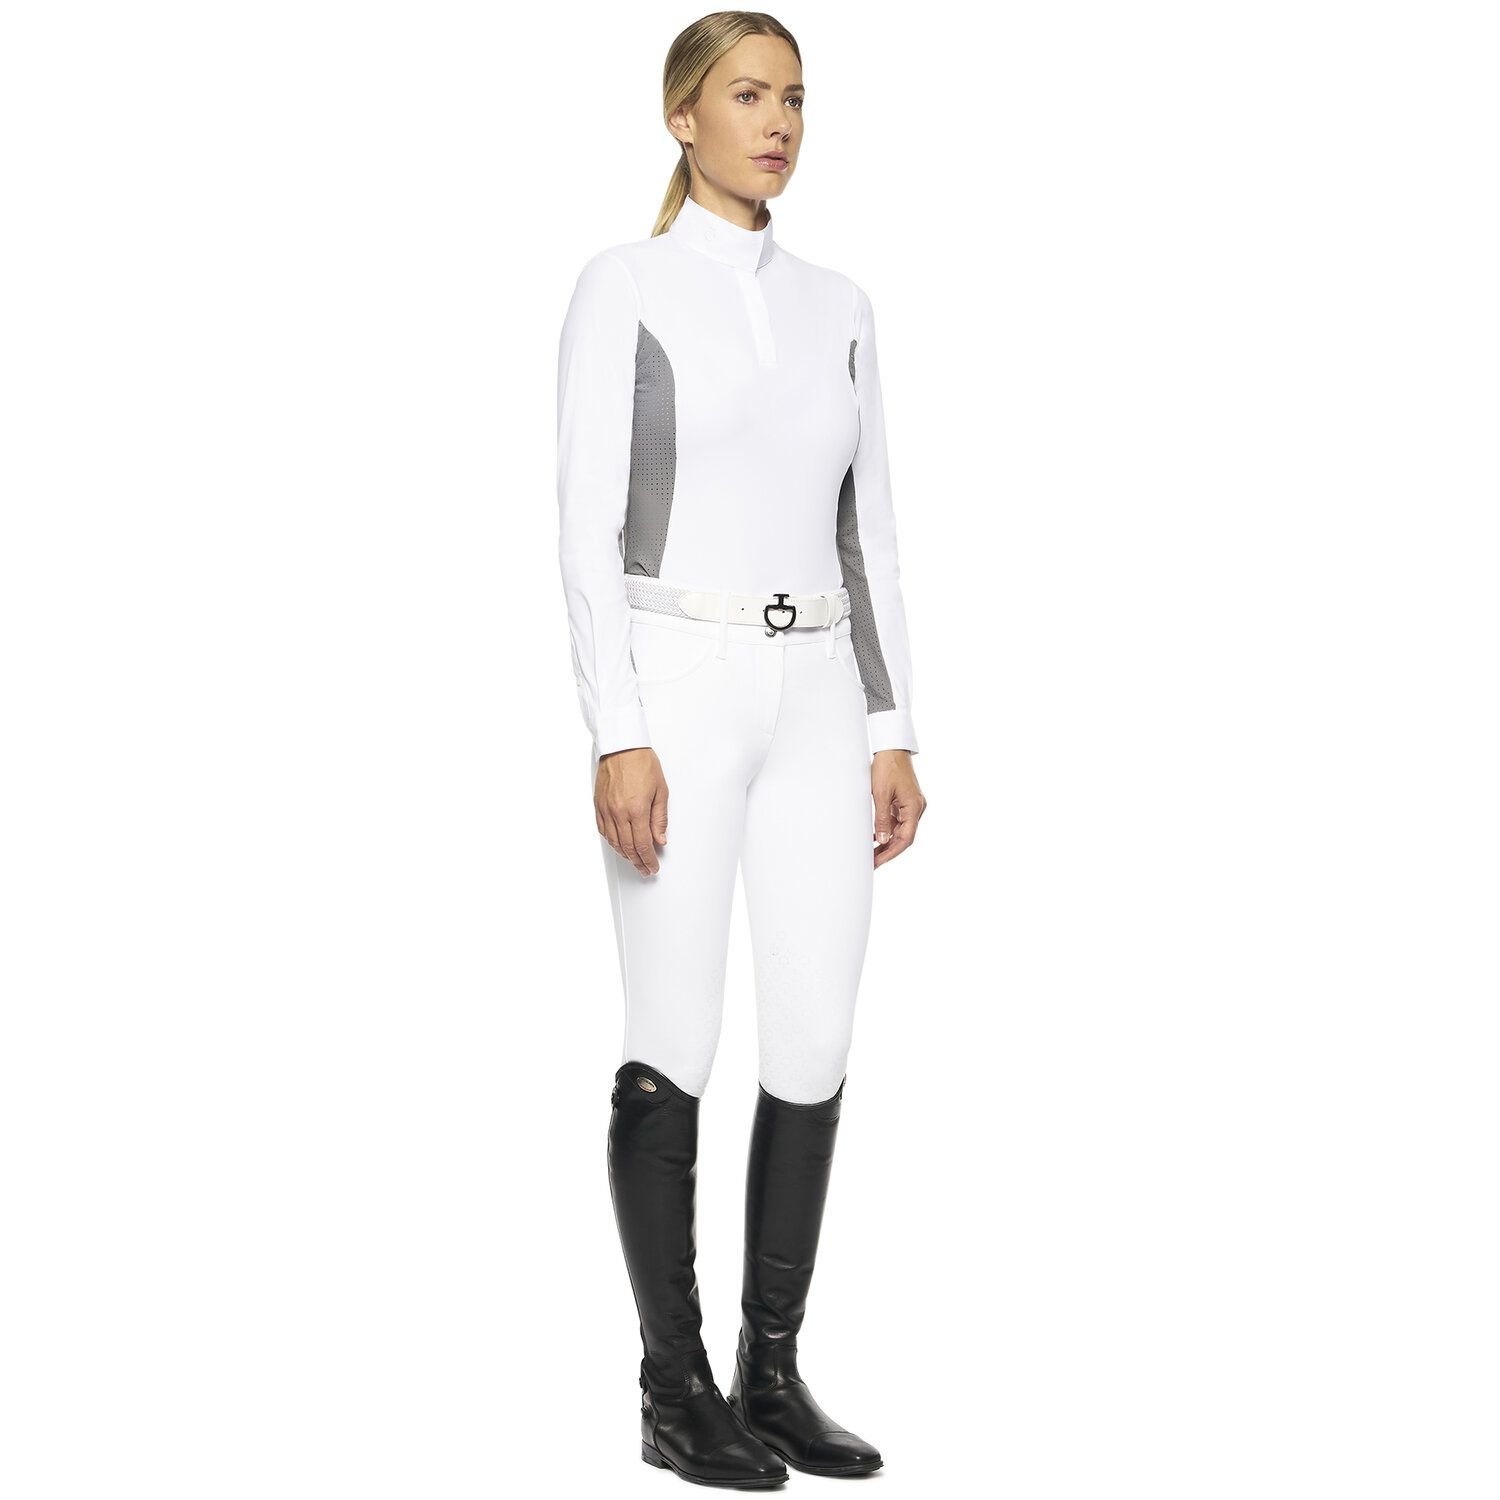 Women's hunter polo with insert